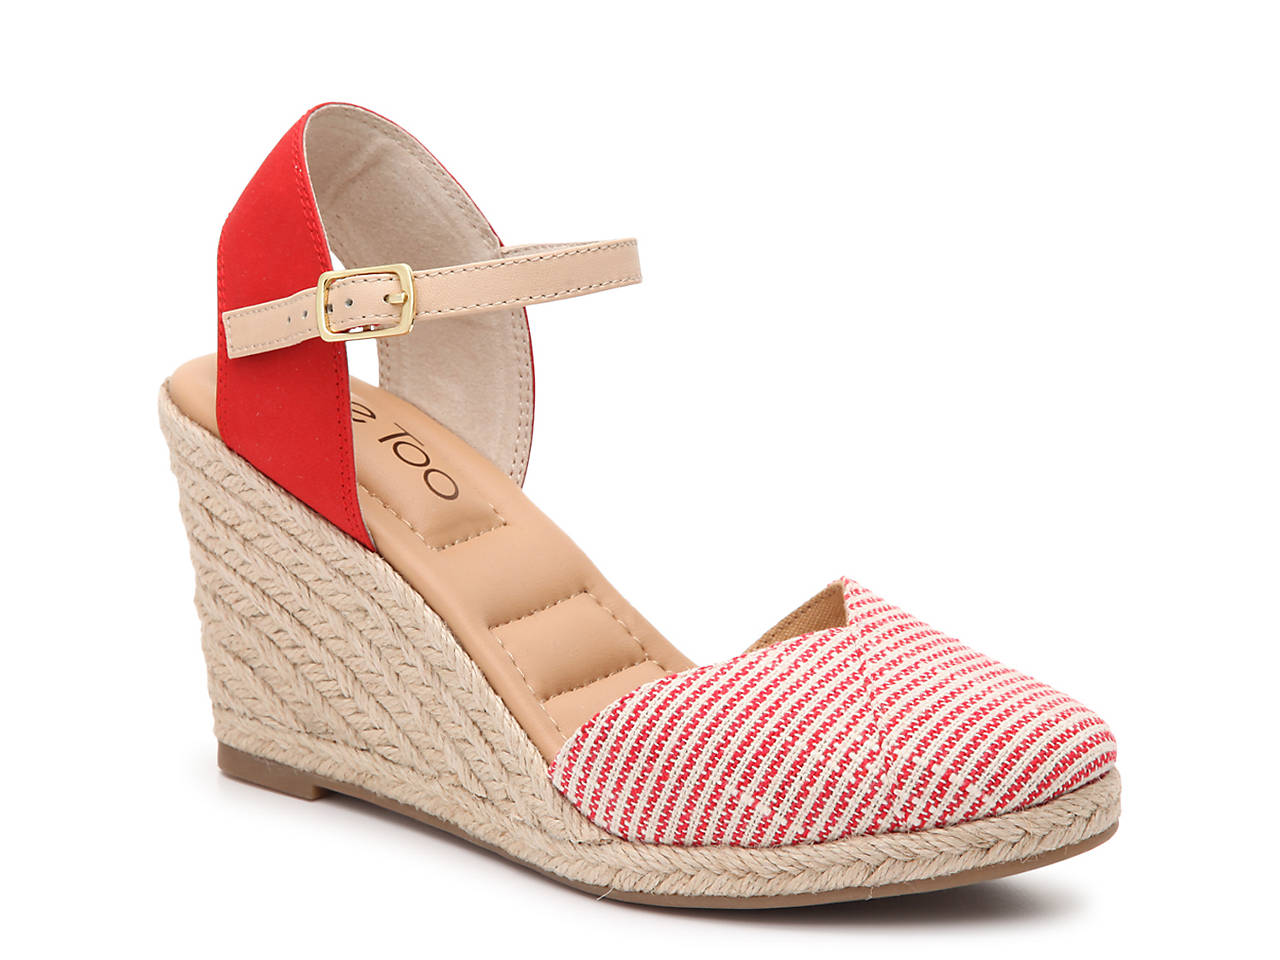 0d46c56adb Me Too Bali Espadrille Wedge Sandal Women s Shoes